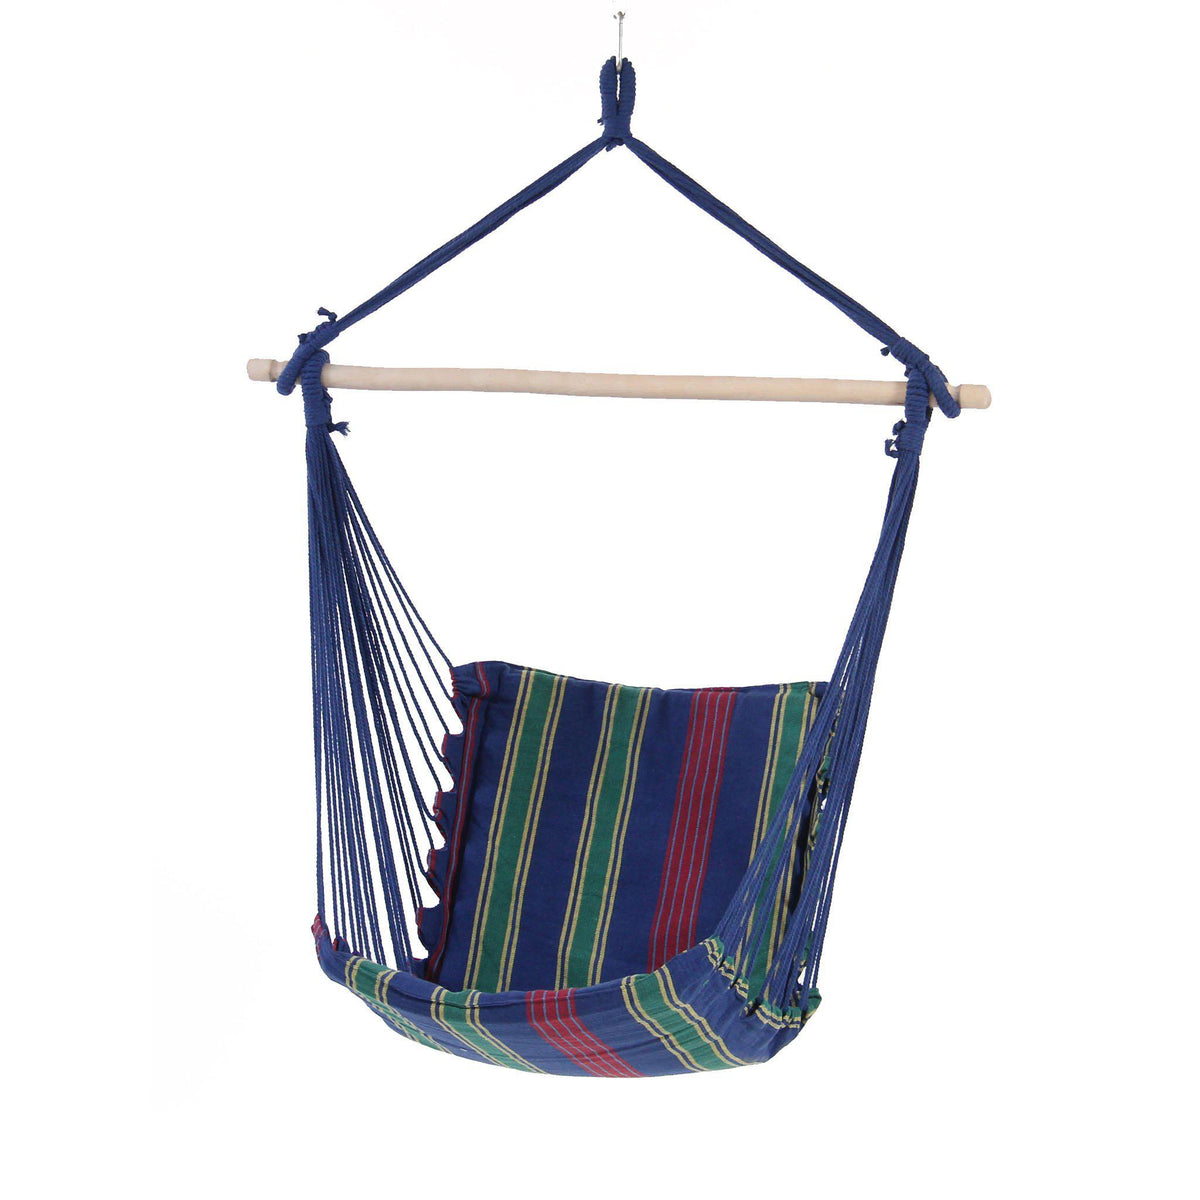 Belize Hanging Chair in blue